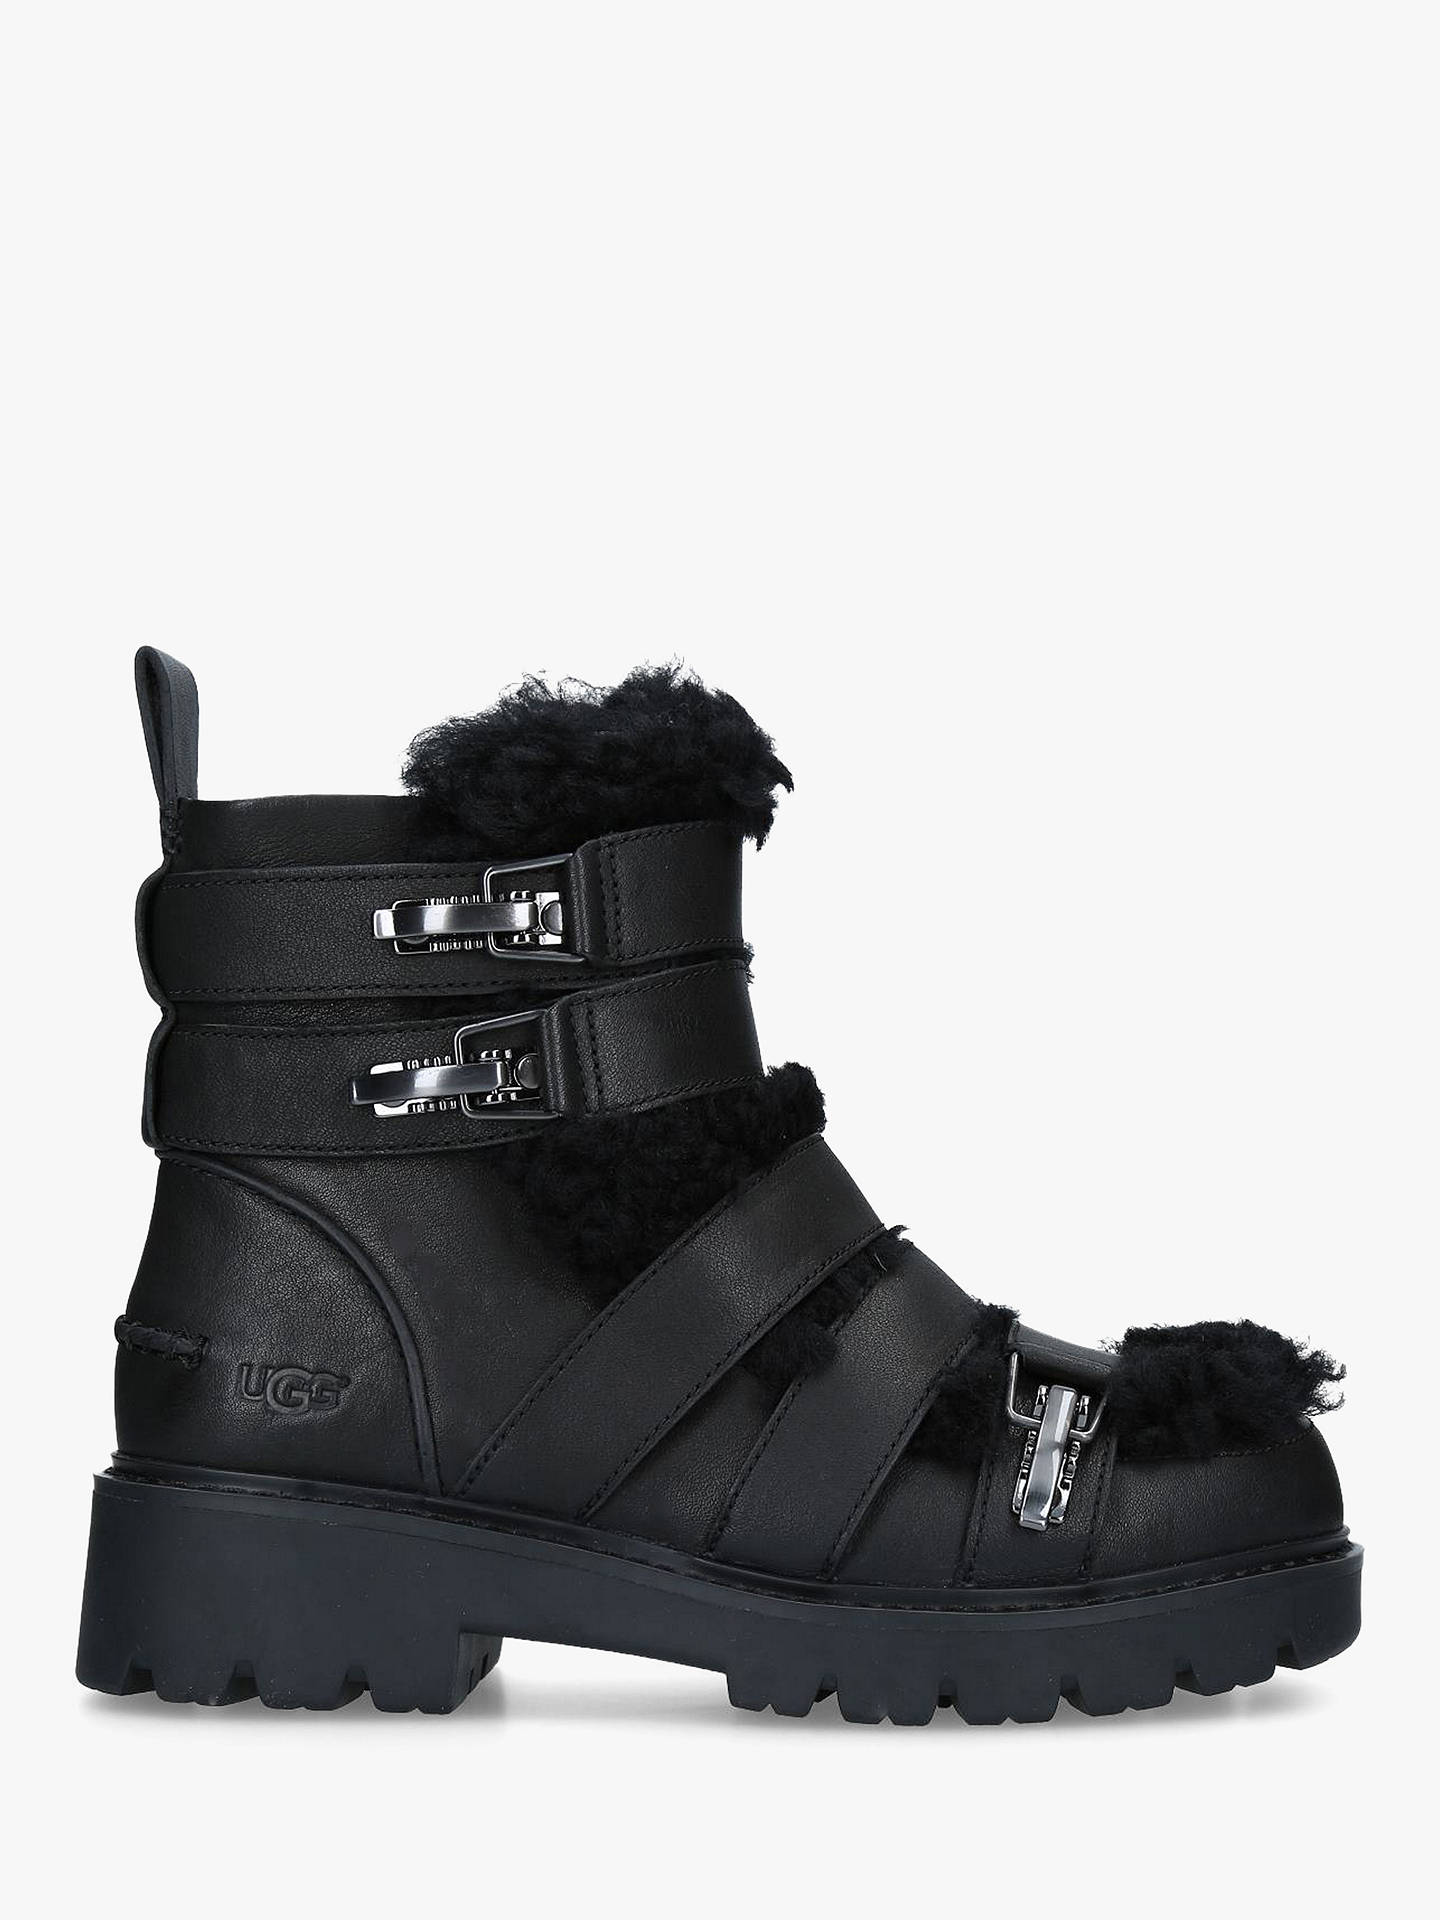 b8ccc51fb8c UGG Brix Strap Detail Ankle Boots, Black Leather at John Lewis ...